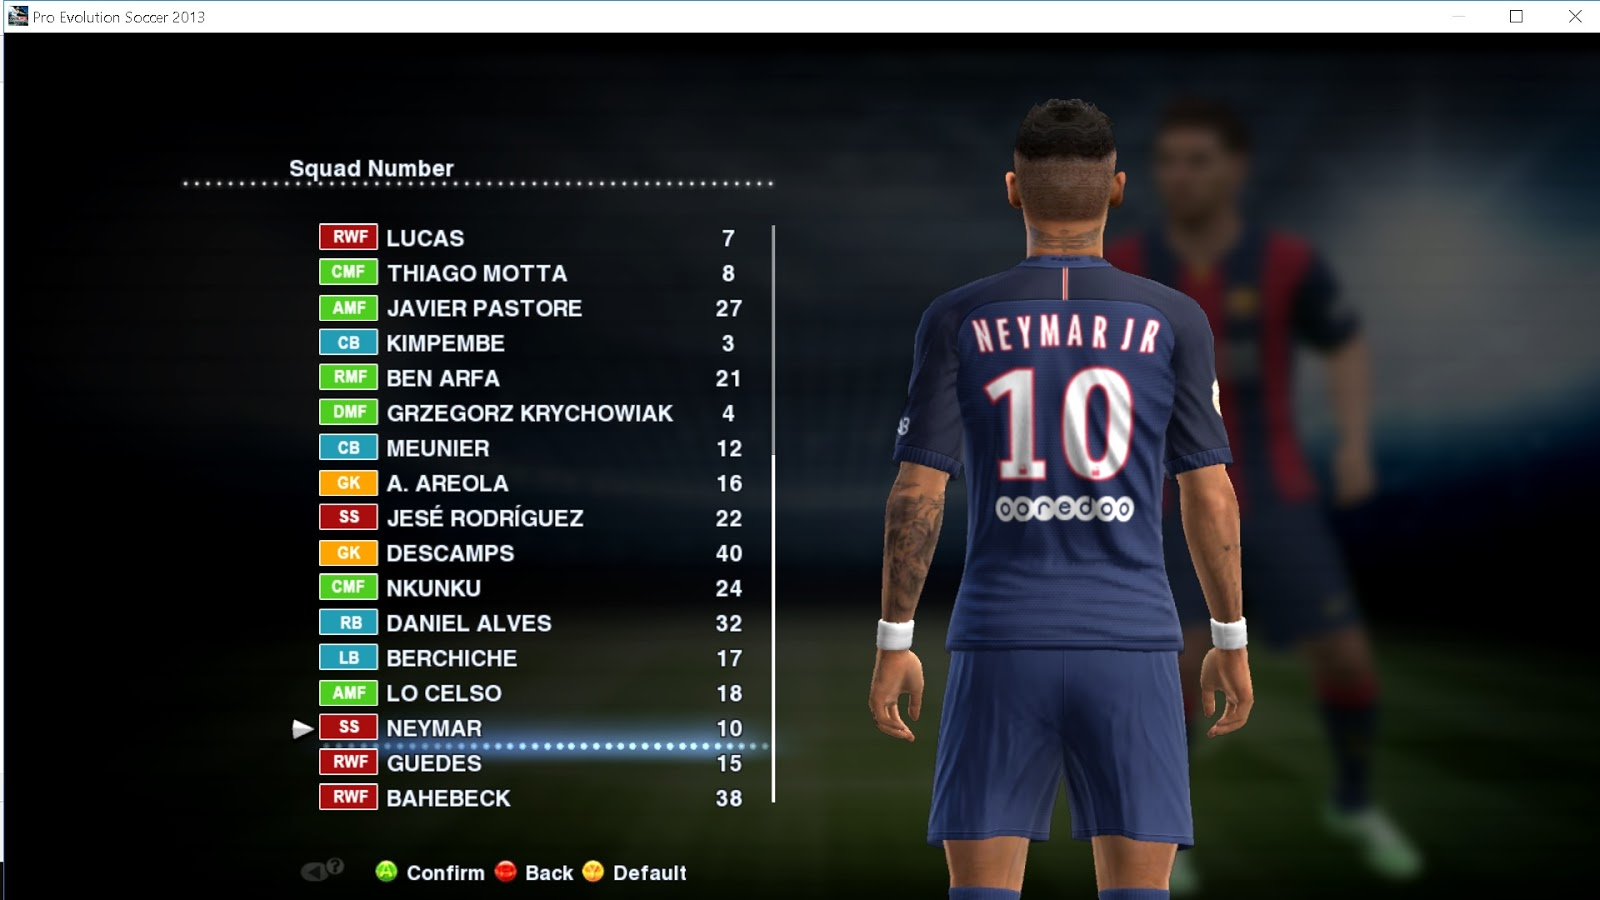 PES Update: PES 2013 Option File 13/09/2017 + Update Stats By Boris